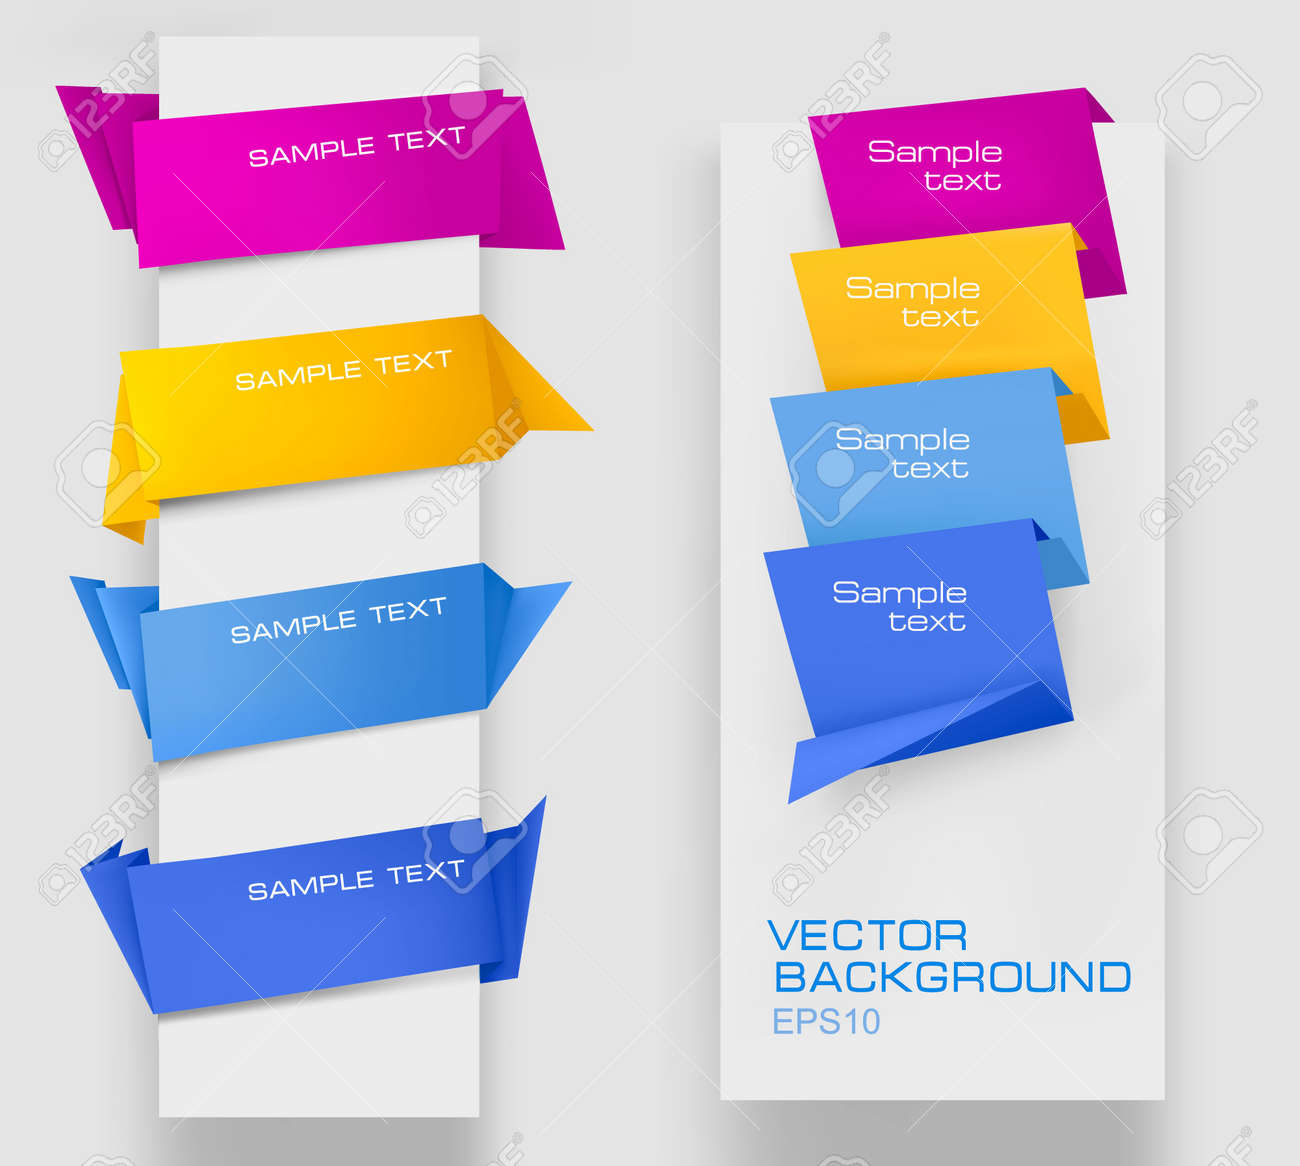 Set of colorful paper banners. Vector illustration. Stock Vector - 10351263